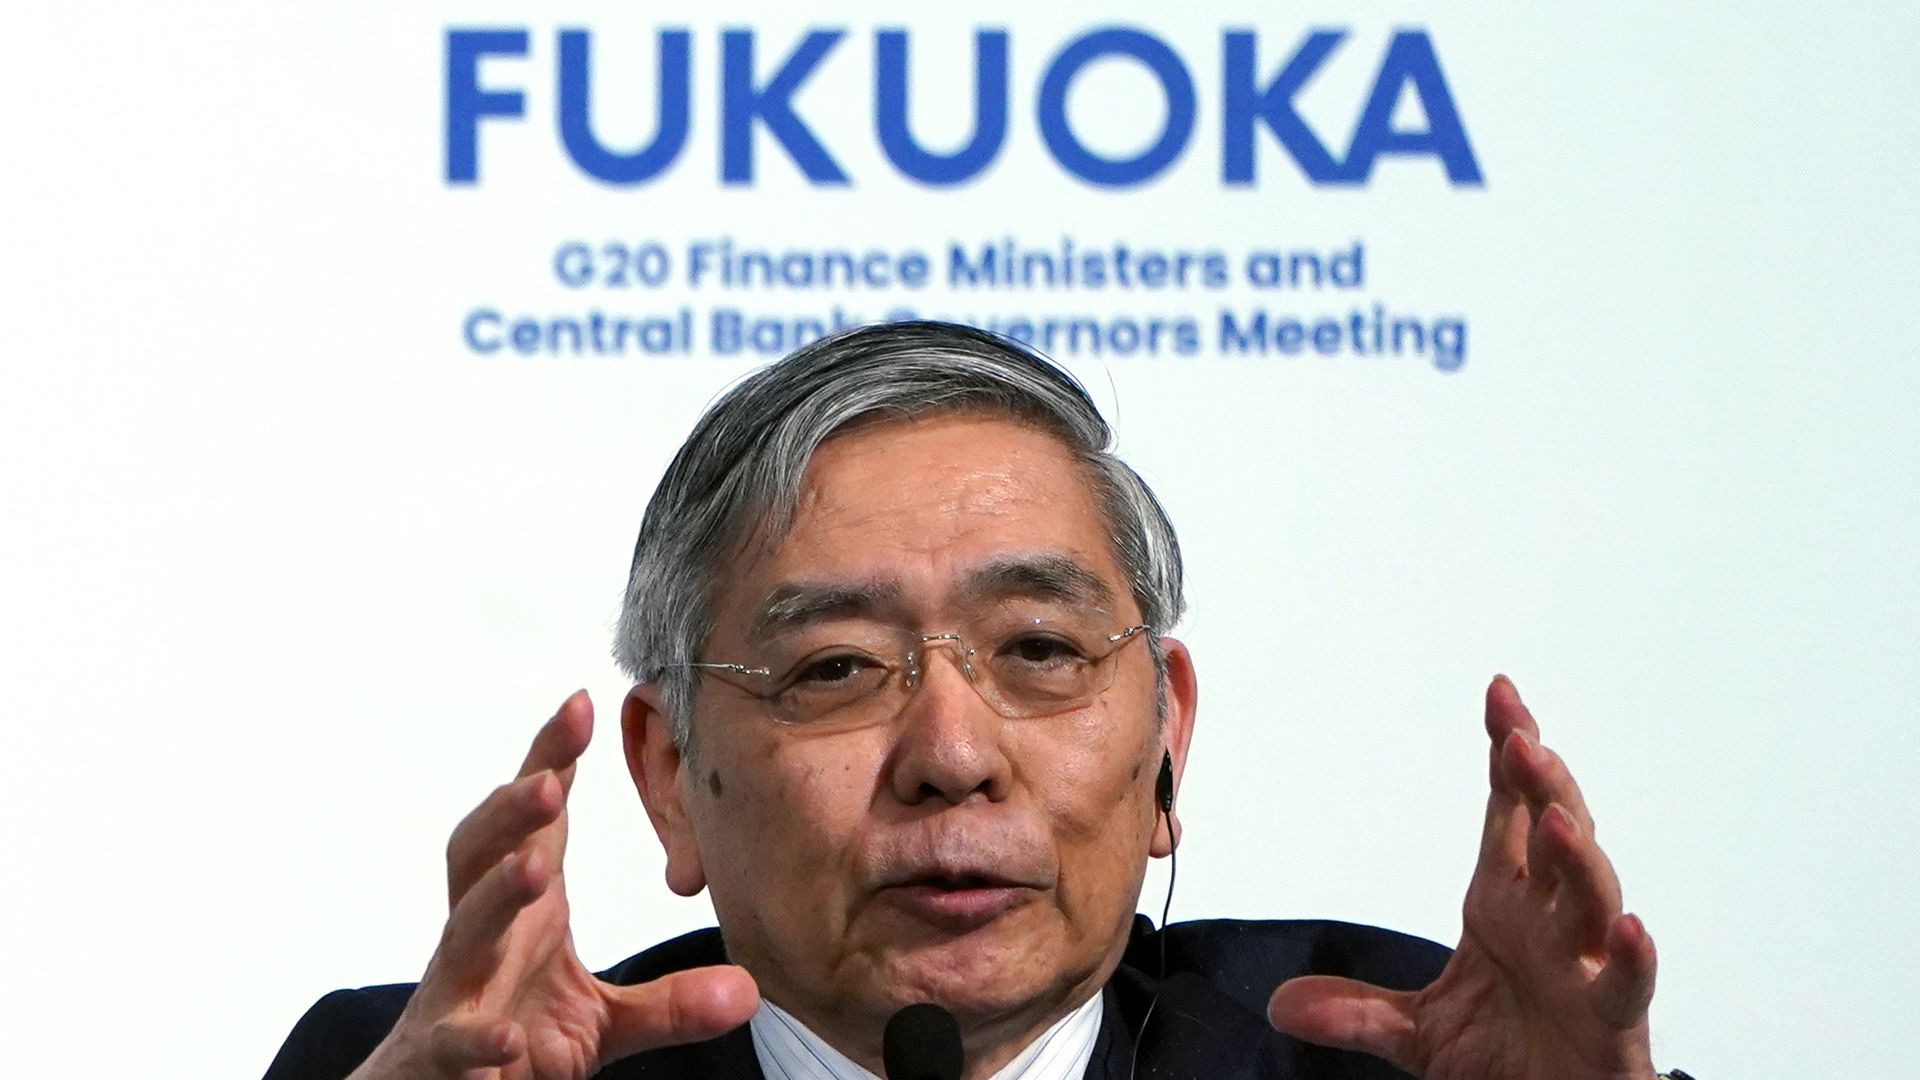 Bank of Japan Governor Haruhiko Kuroda answers a question during a host country press conference of the G20 finance ministers and central bank governors meeting in Fukuoka, Japan.